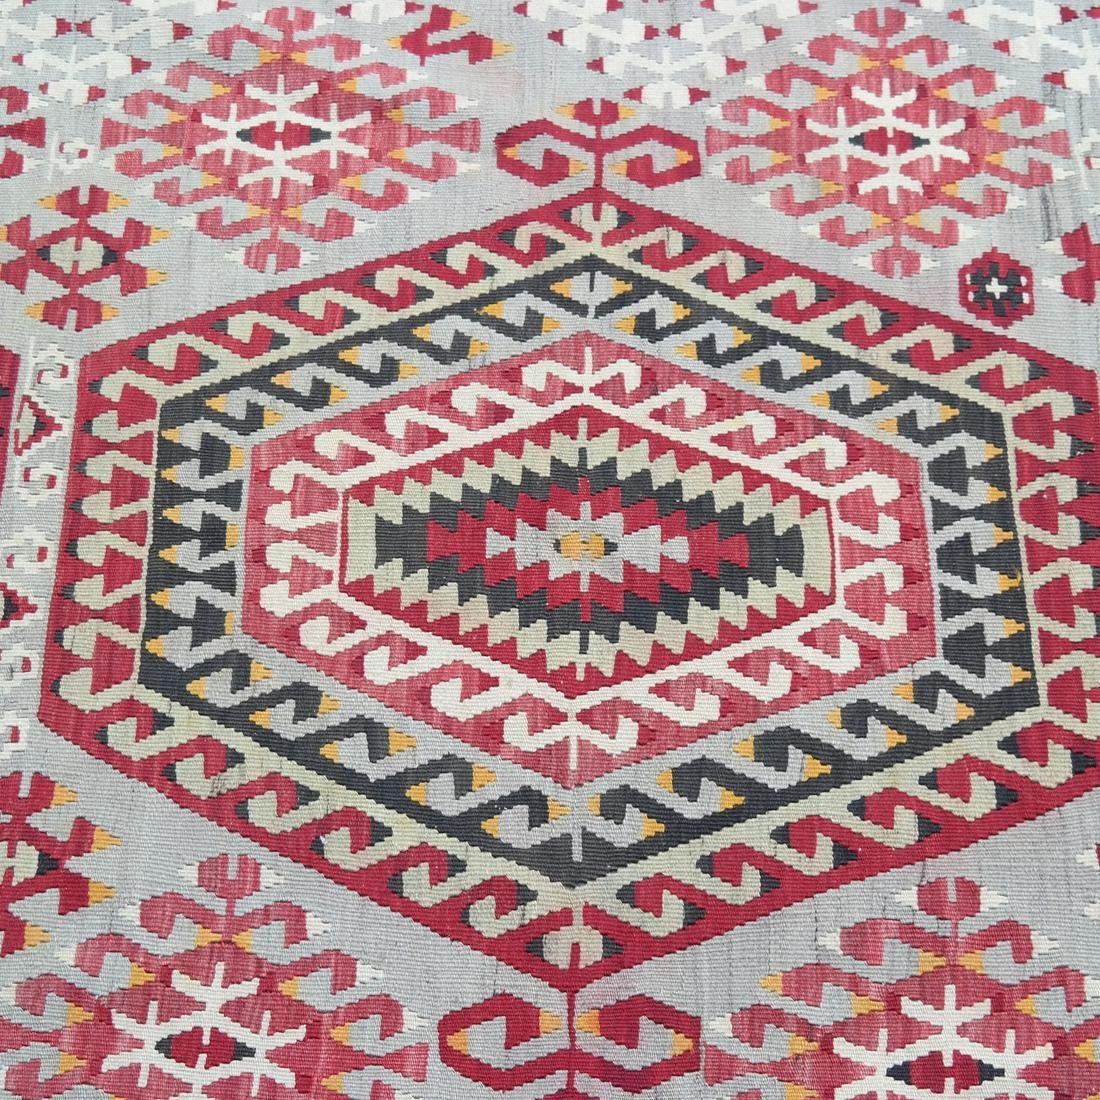 Central Asian Rug, Gray & Red - 2